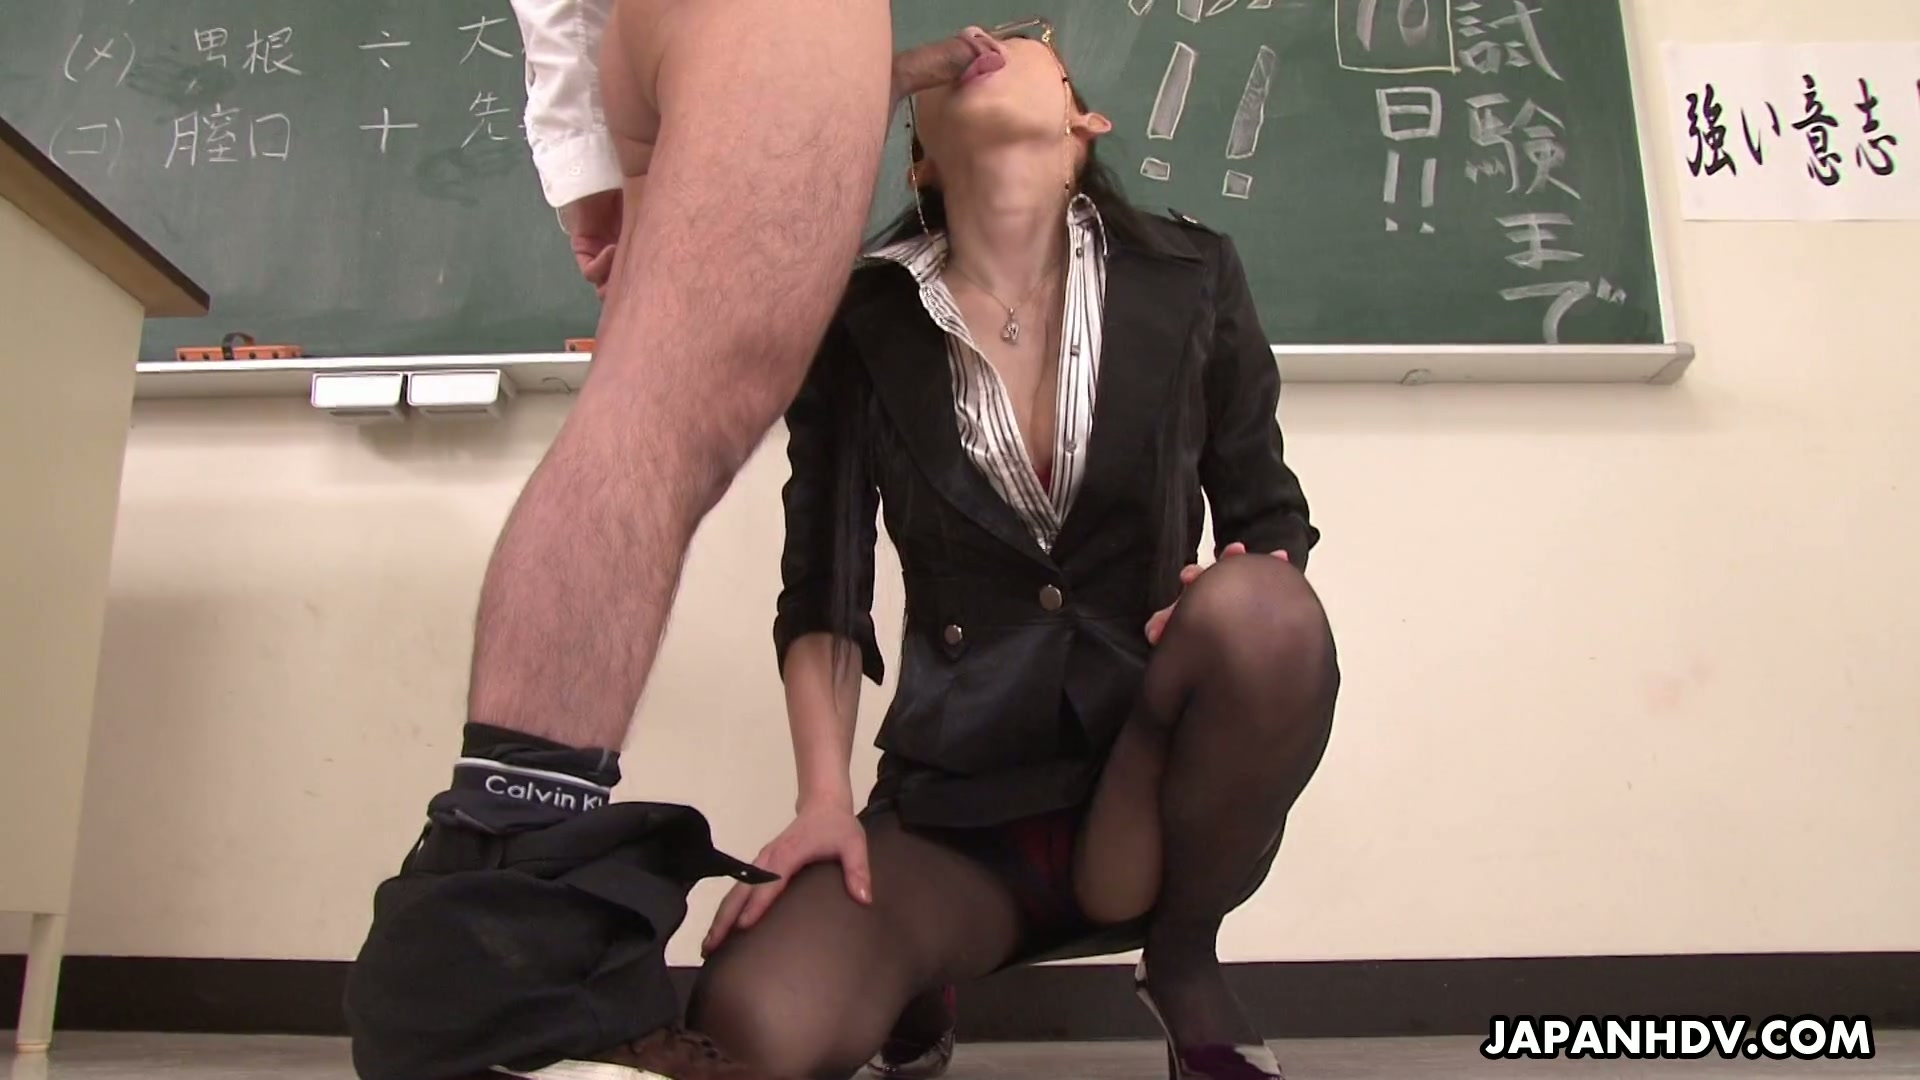 Hot Asian teacher in glasses sucks tasty penis of her student with passion